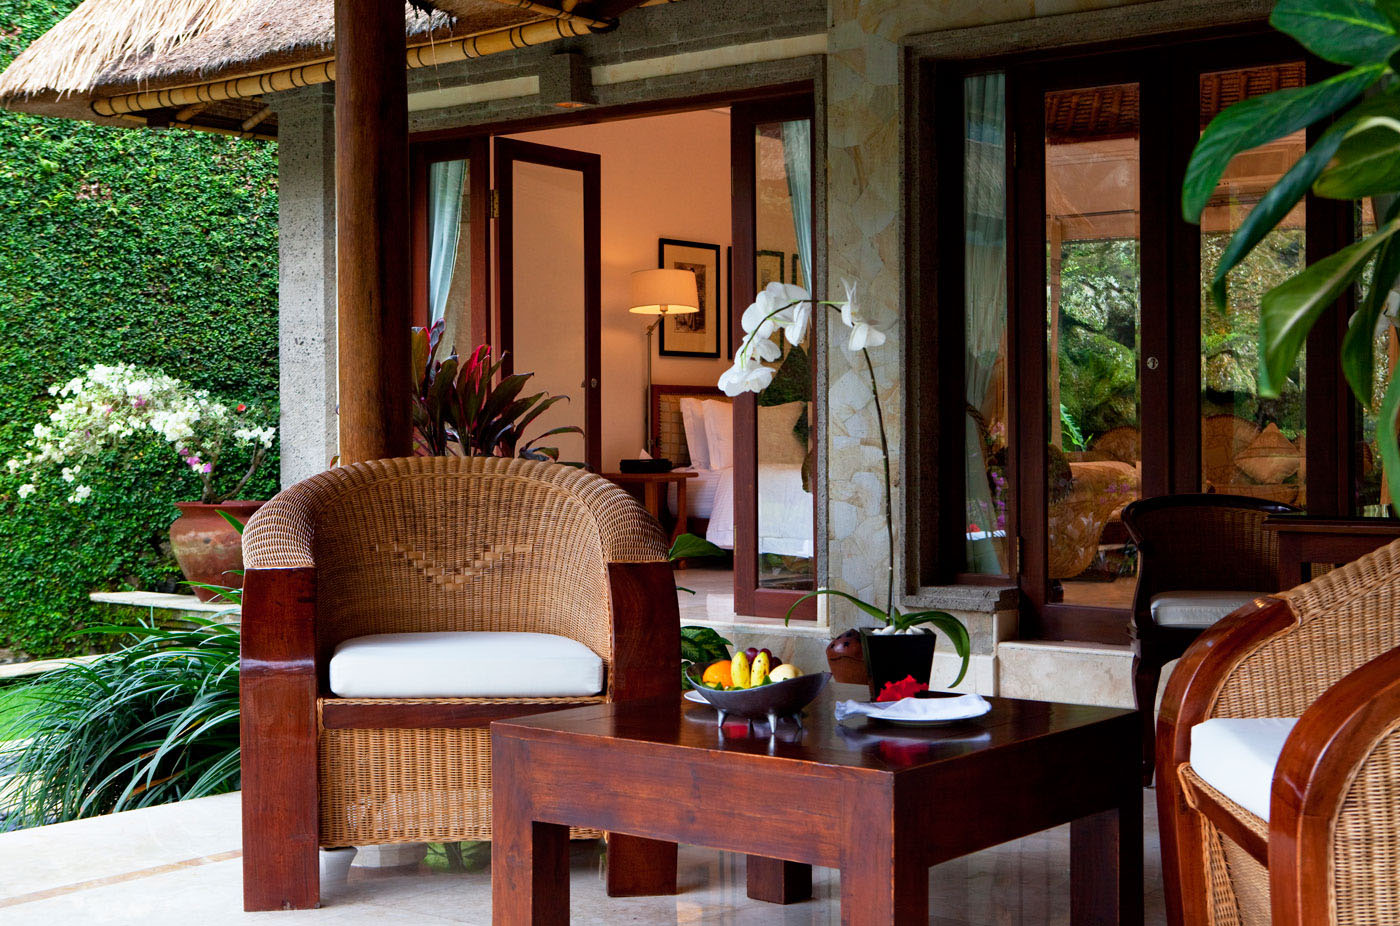 Bali Home Decor: Romantic Viceroy Bali Resort In Ubud